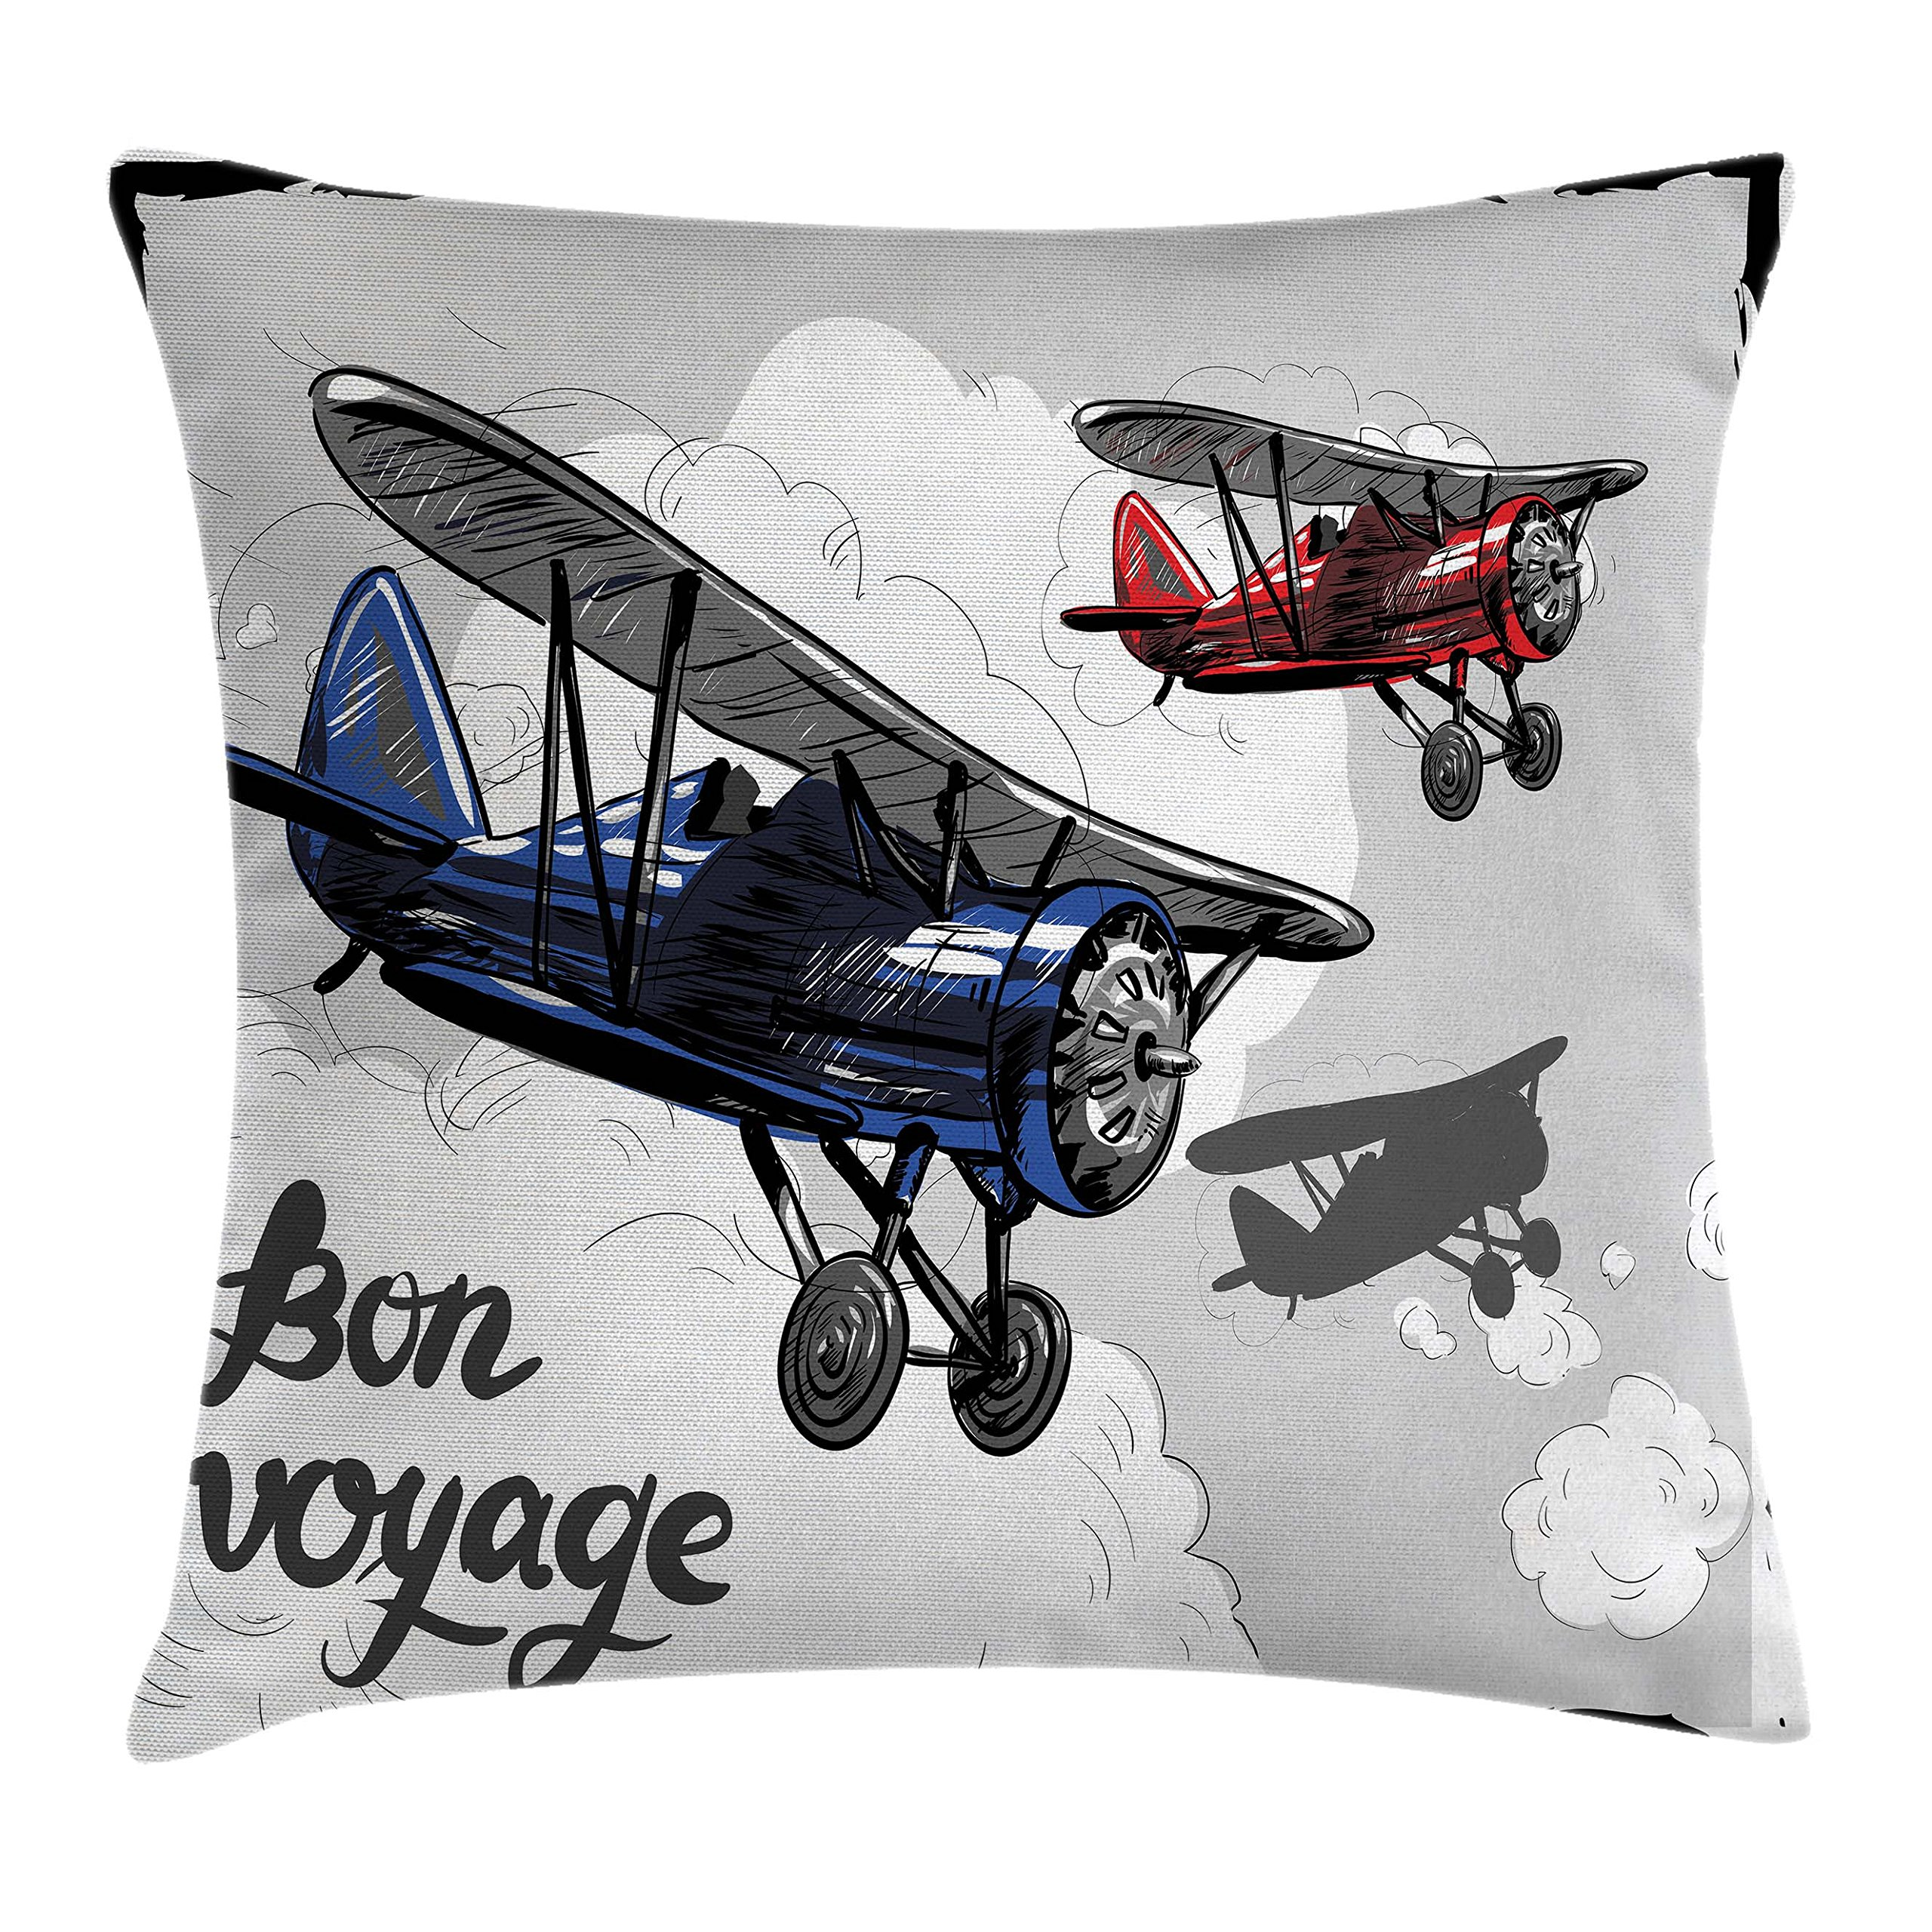 Ambesonne Going Away Party Throw Pillow Cushion Cover, Retro Airplane Poster Inspired Bon Voyage Lets Travel Fly Vintage Print, Decorative Square Accent Pillow Case, 36 X 36 Inches, Blue Red Grey